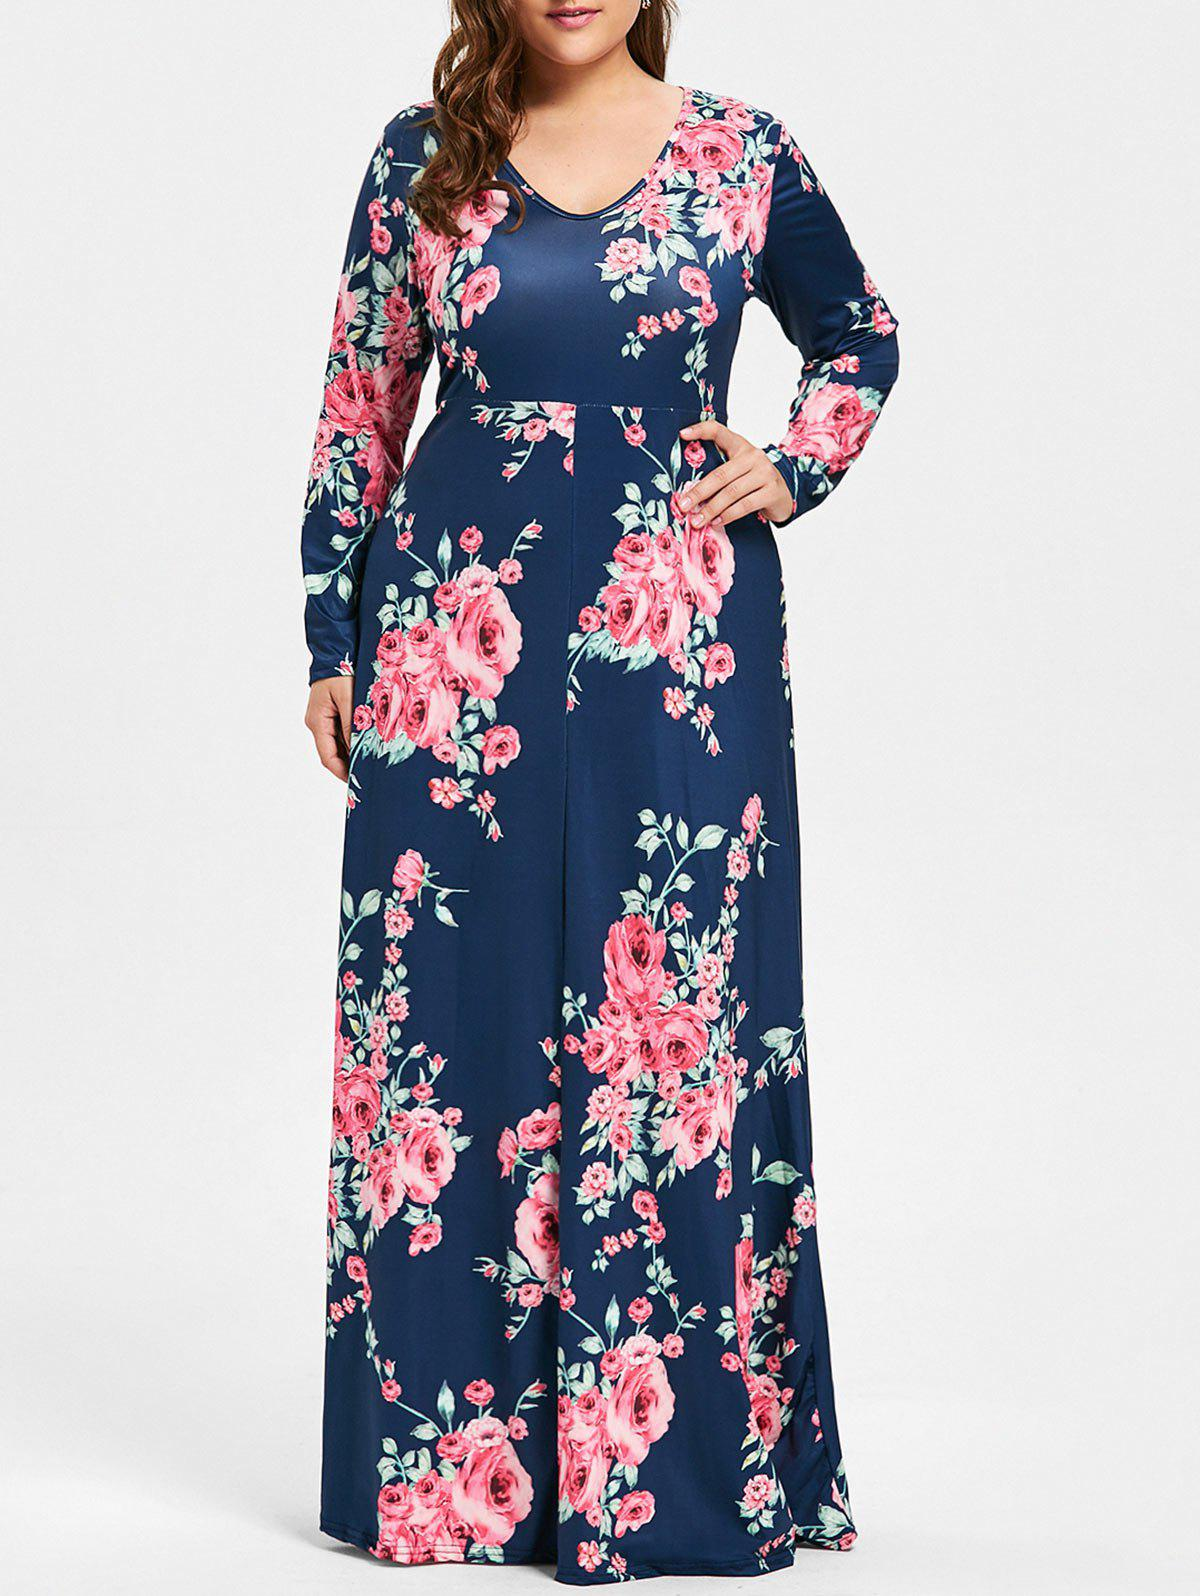 Plus Size Long Floral Maxi DressWOMEN<br><br>Size: 5XL; Color: PURPLISH BLUE; Style: Casual; Material: Cotton; Silhouette: A-Line; Dresses Length: Floor-Length; Neckline: V-Neck; Sleeve Length: Long Sleeves; Pattern Type: Floral; With Belt: No; Season: Fall; Weight: 0.5050kg; Package Contents: 1 x Dress;